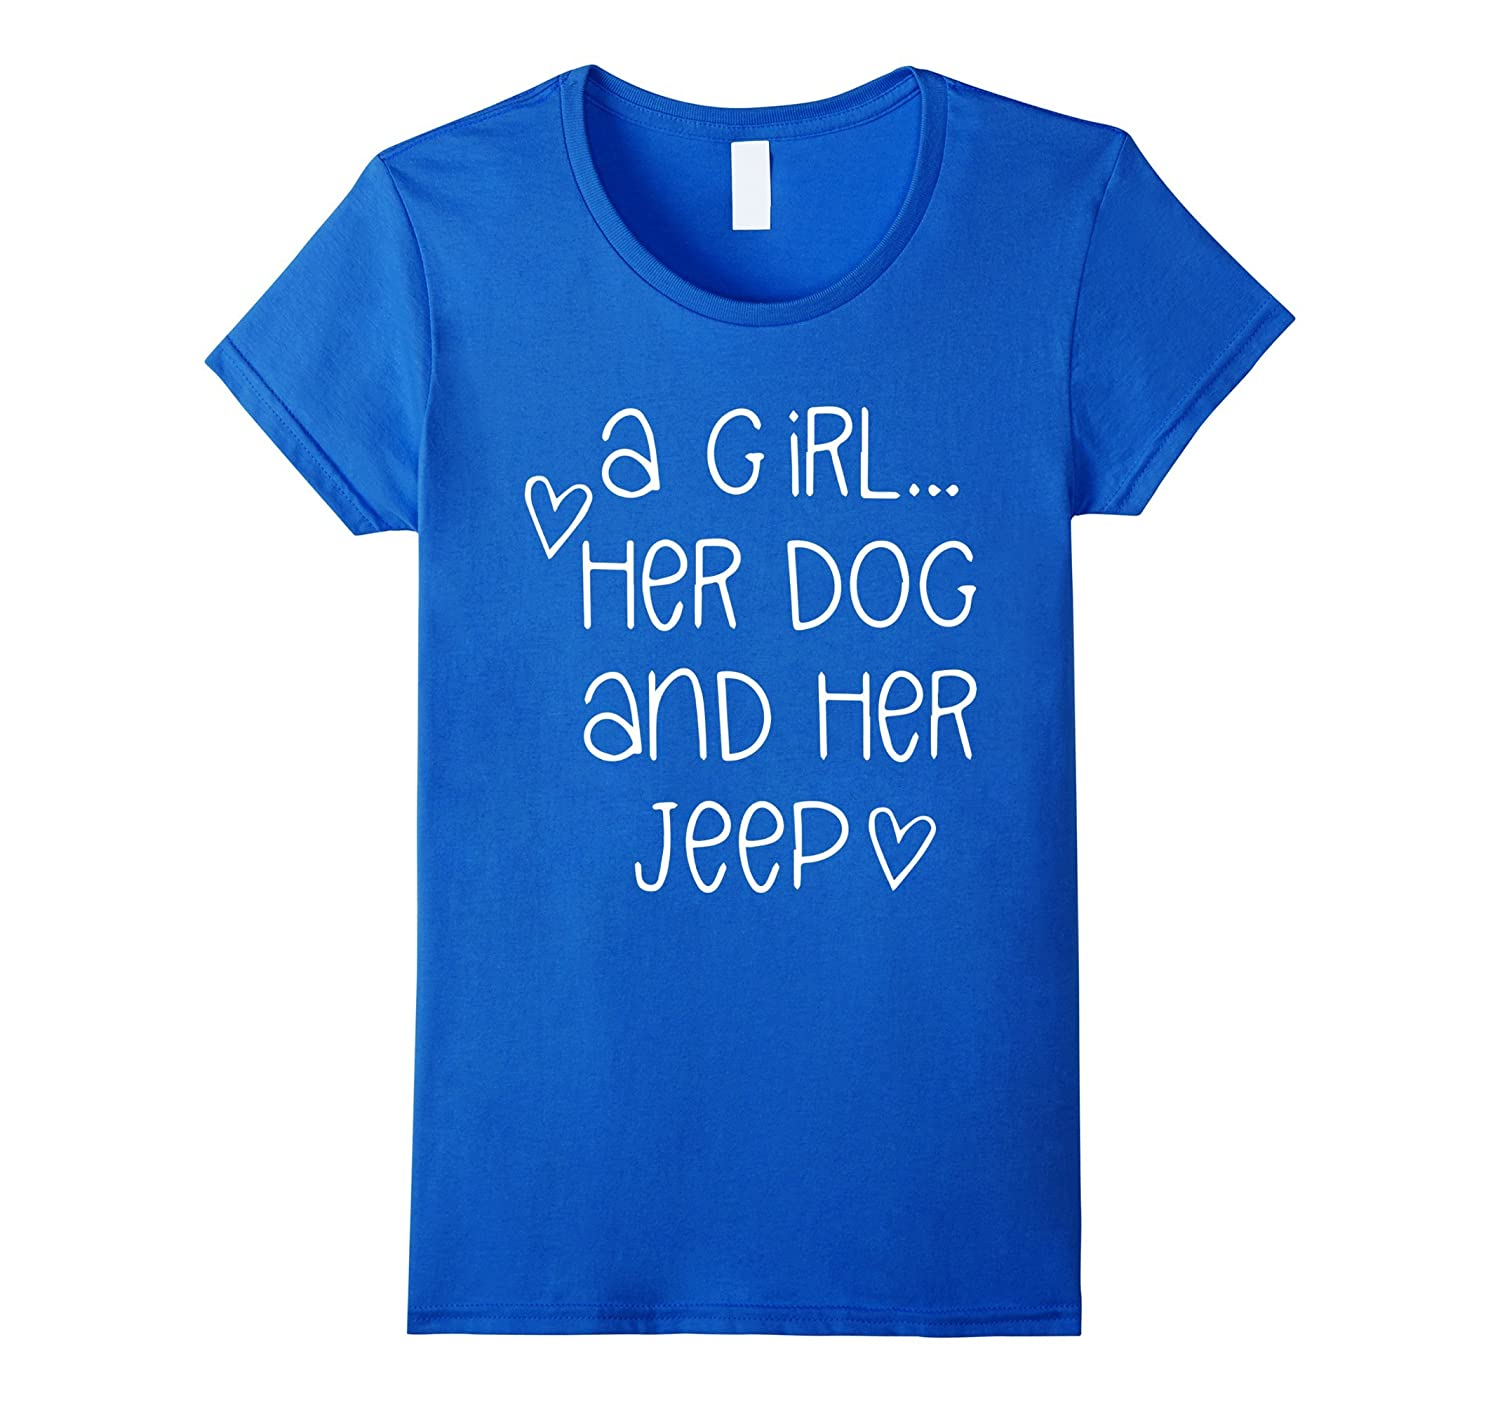 81Ikb9O4k9L._SL1500_ Take A Look About Jeep Dog Accessories with Captivating Gallery Cars Review